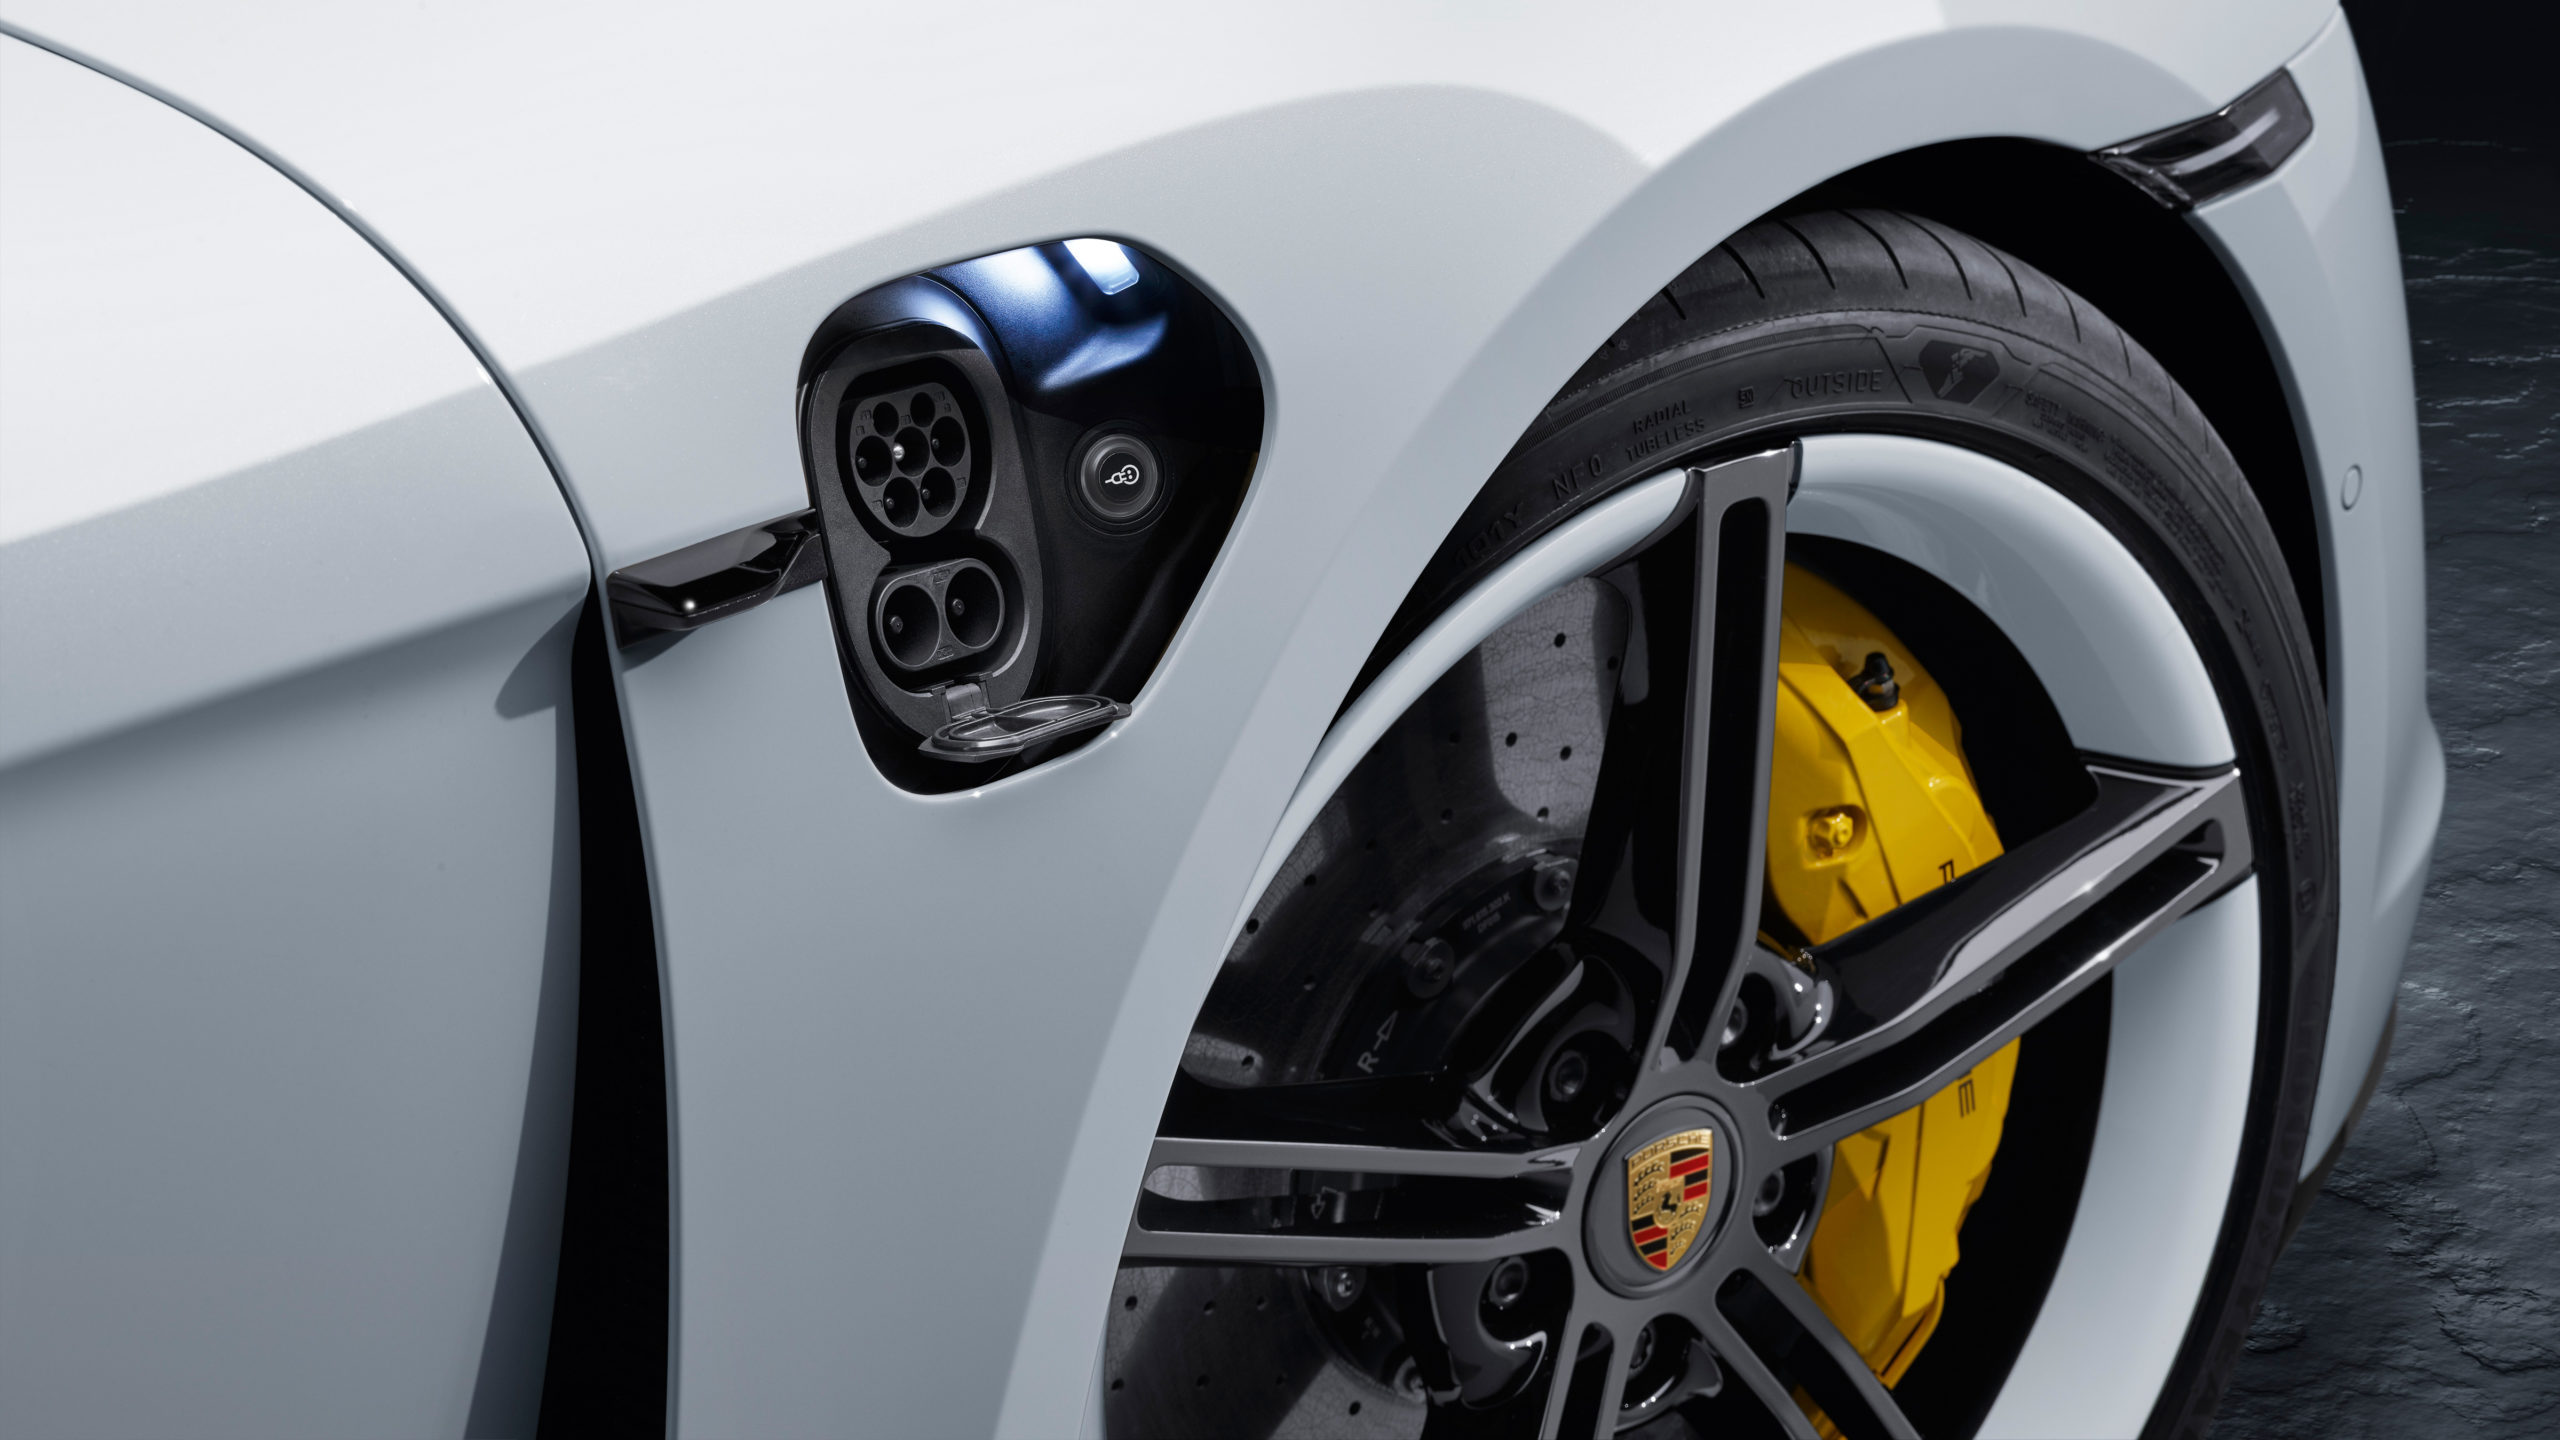 Image of 2020 Porsche Taycan charging port